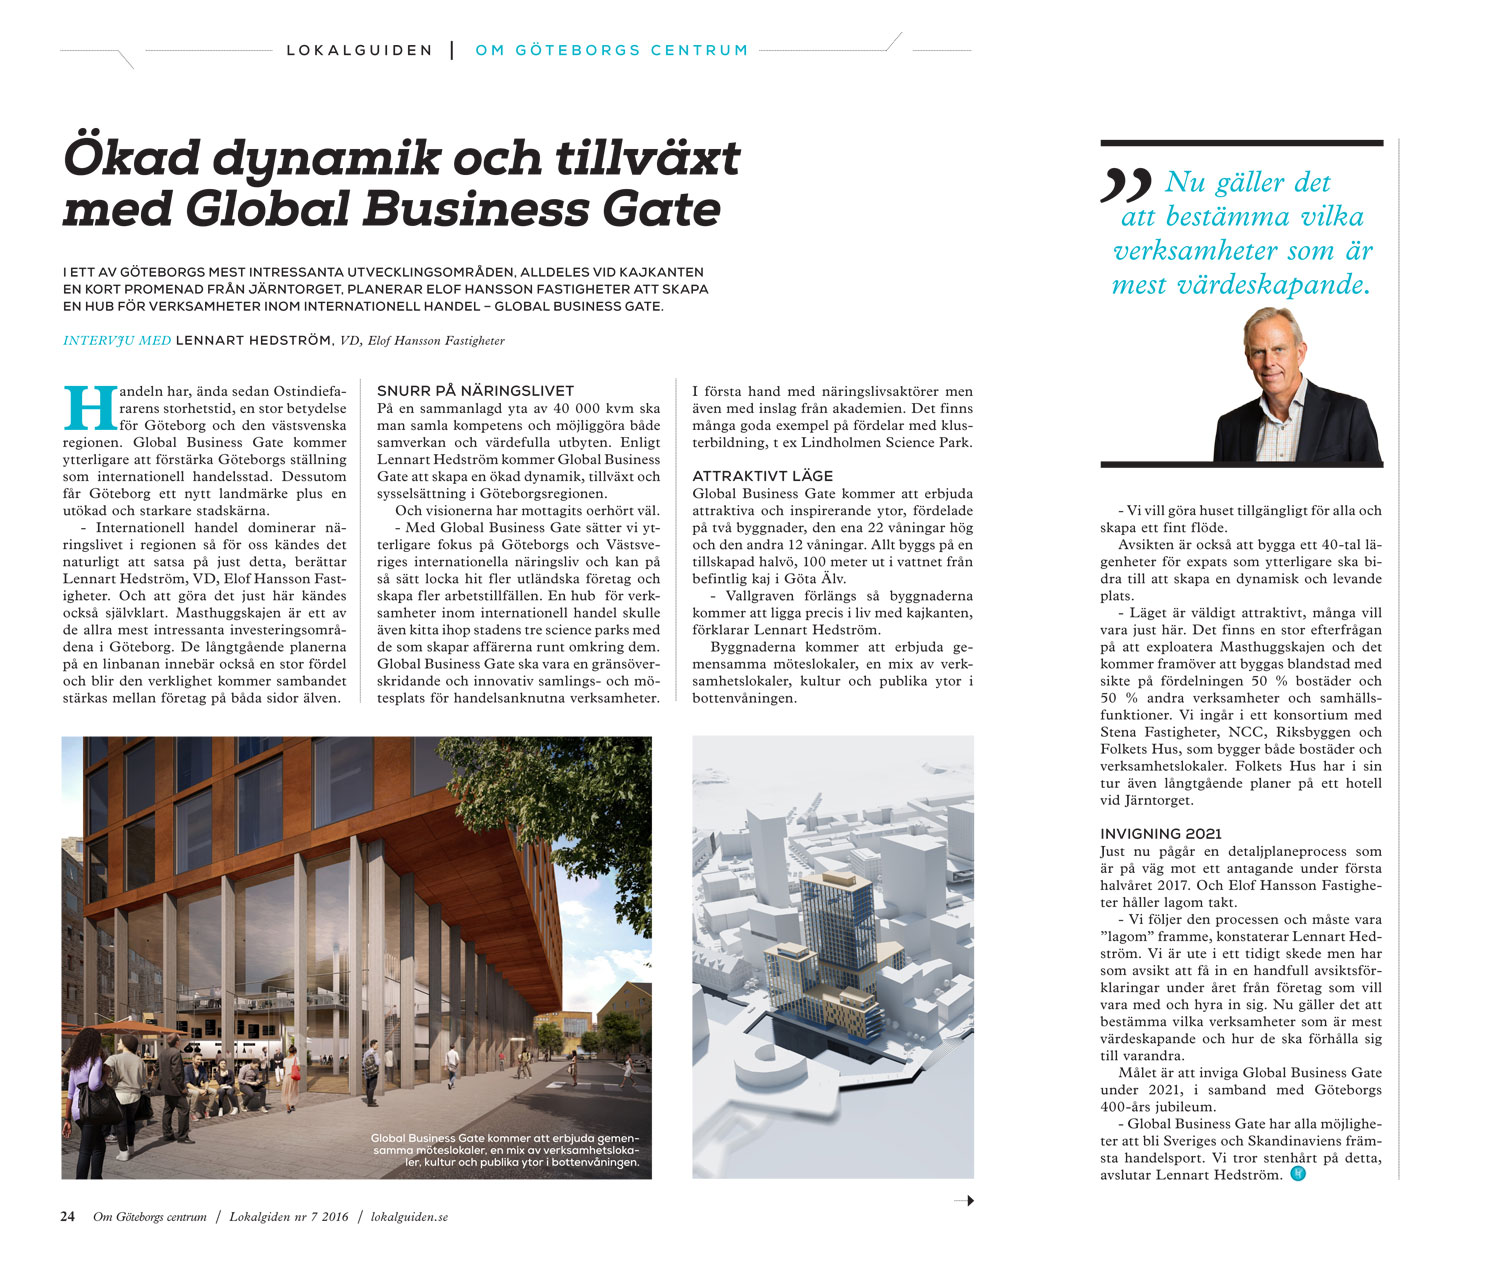 Global-Business-Gate_artikel #7 Lokalguiden